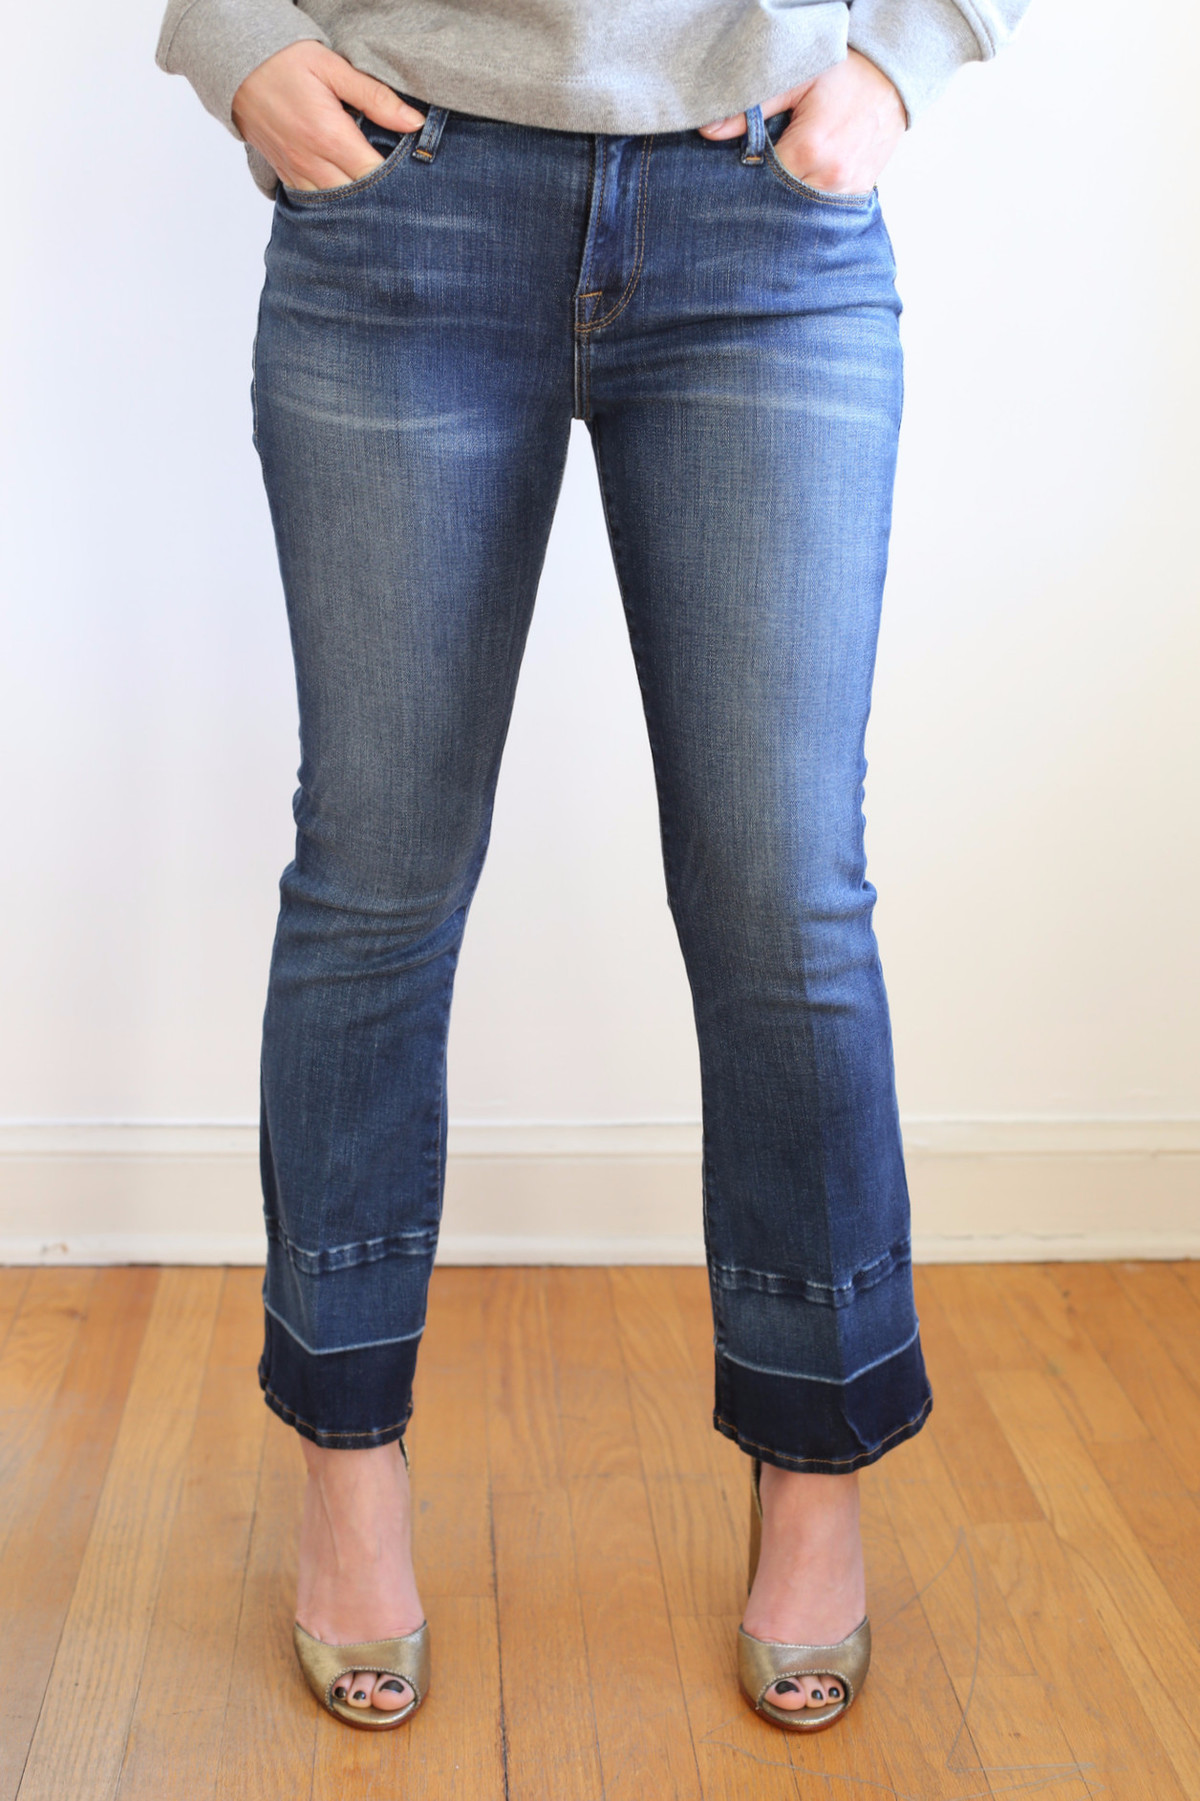 Discount Latest Collections Cheap Wholesale Le Crop Mini Boot jeans - Blue Frame Denim Inexpensive Discount Wide Range Of cgLpoc8J